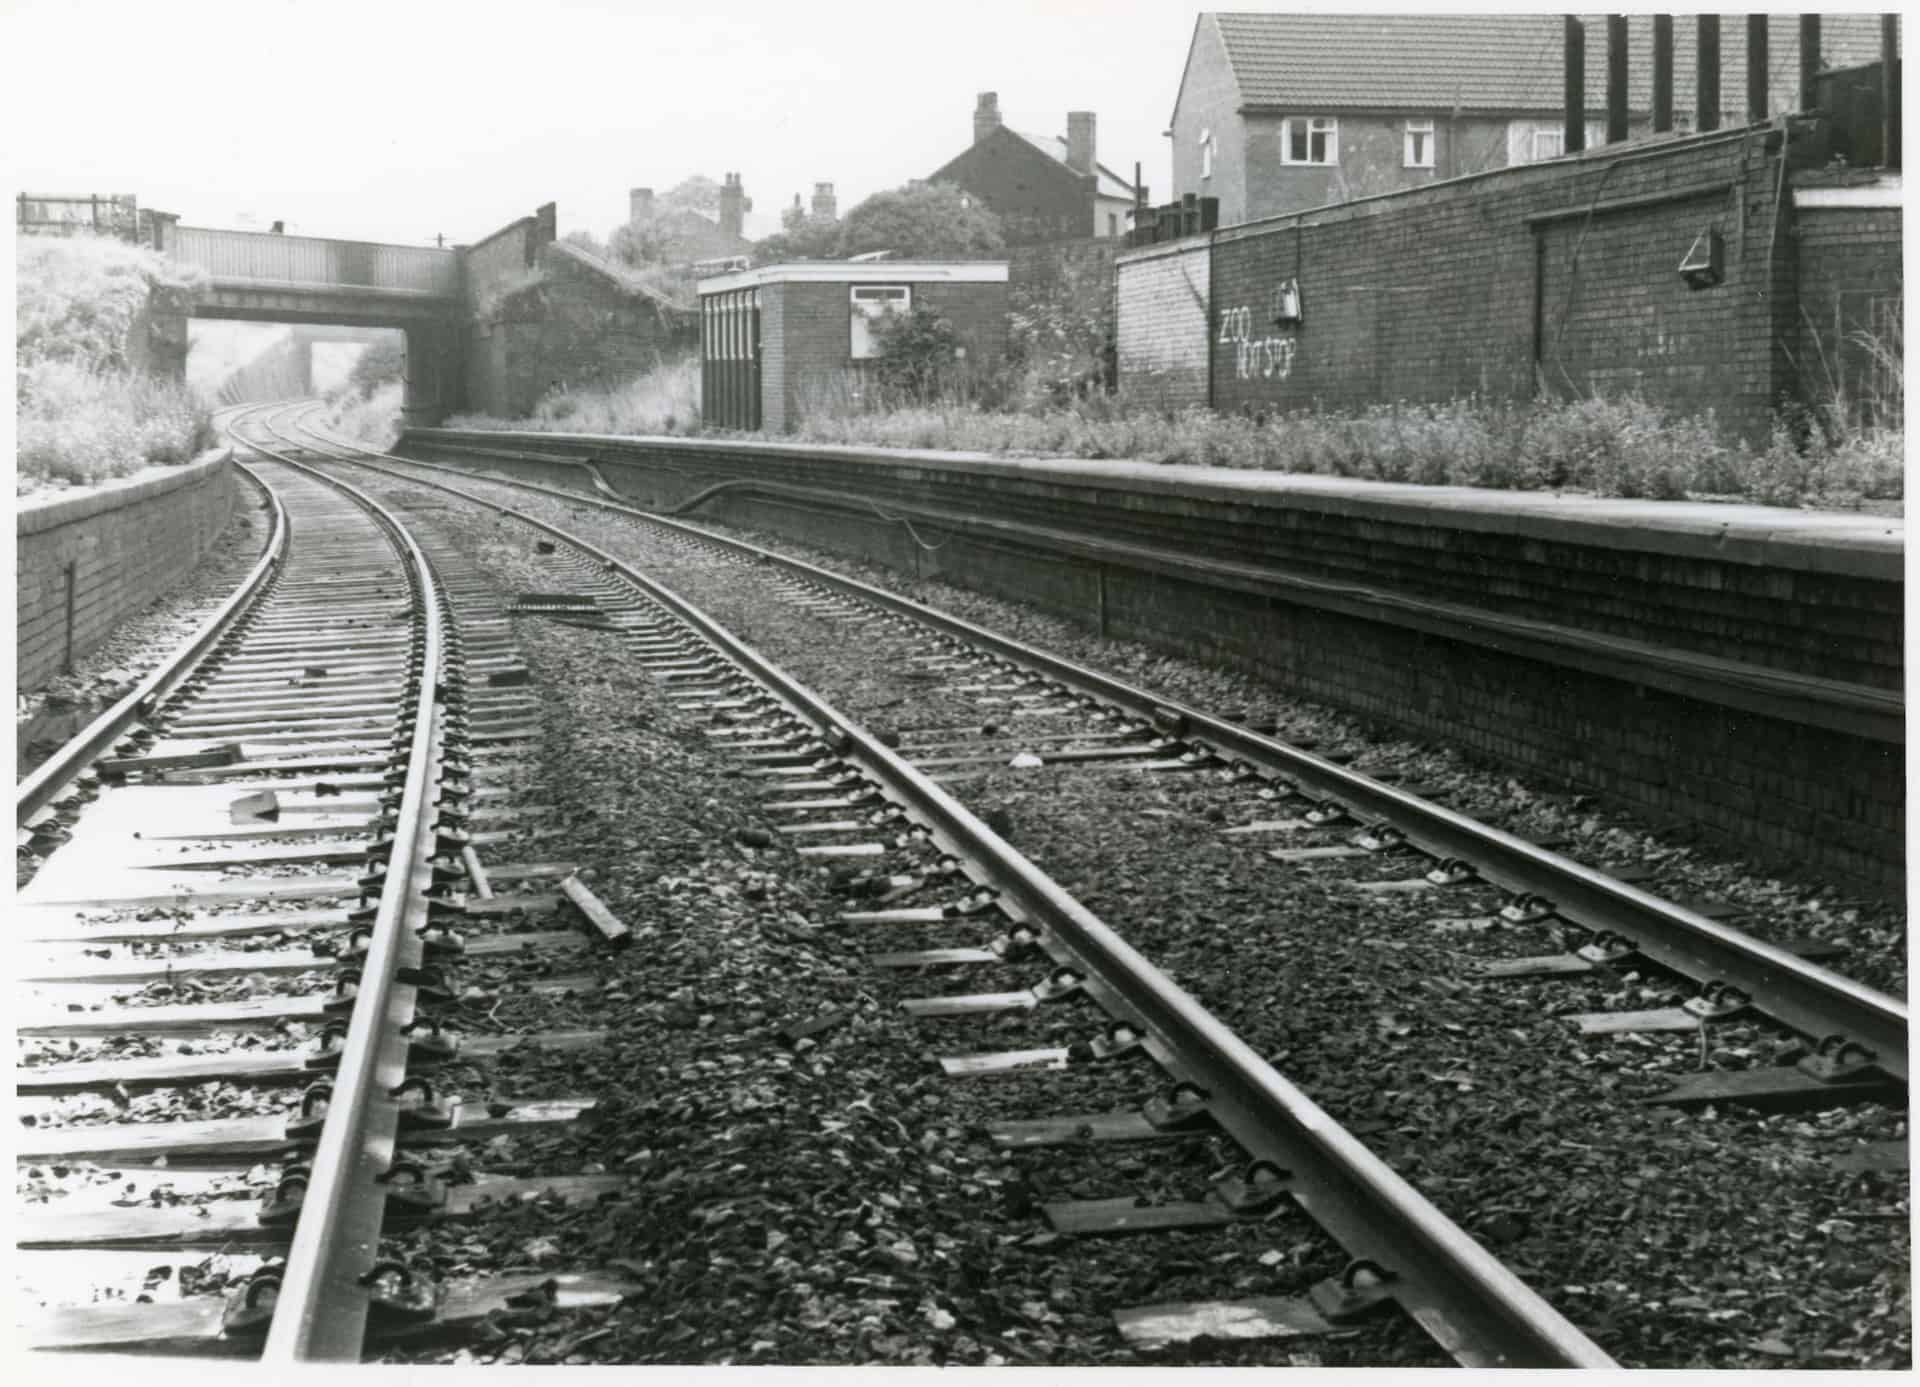 Railway Station, Dudley Port, Tipton, 1968, Photo: Alan Price  Provided by: Community and History Archive Service, Sandwell